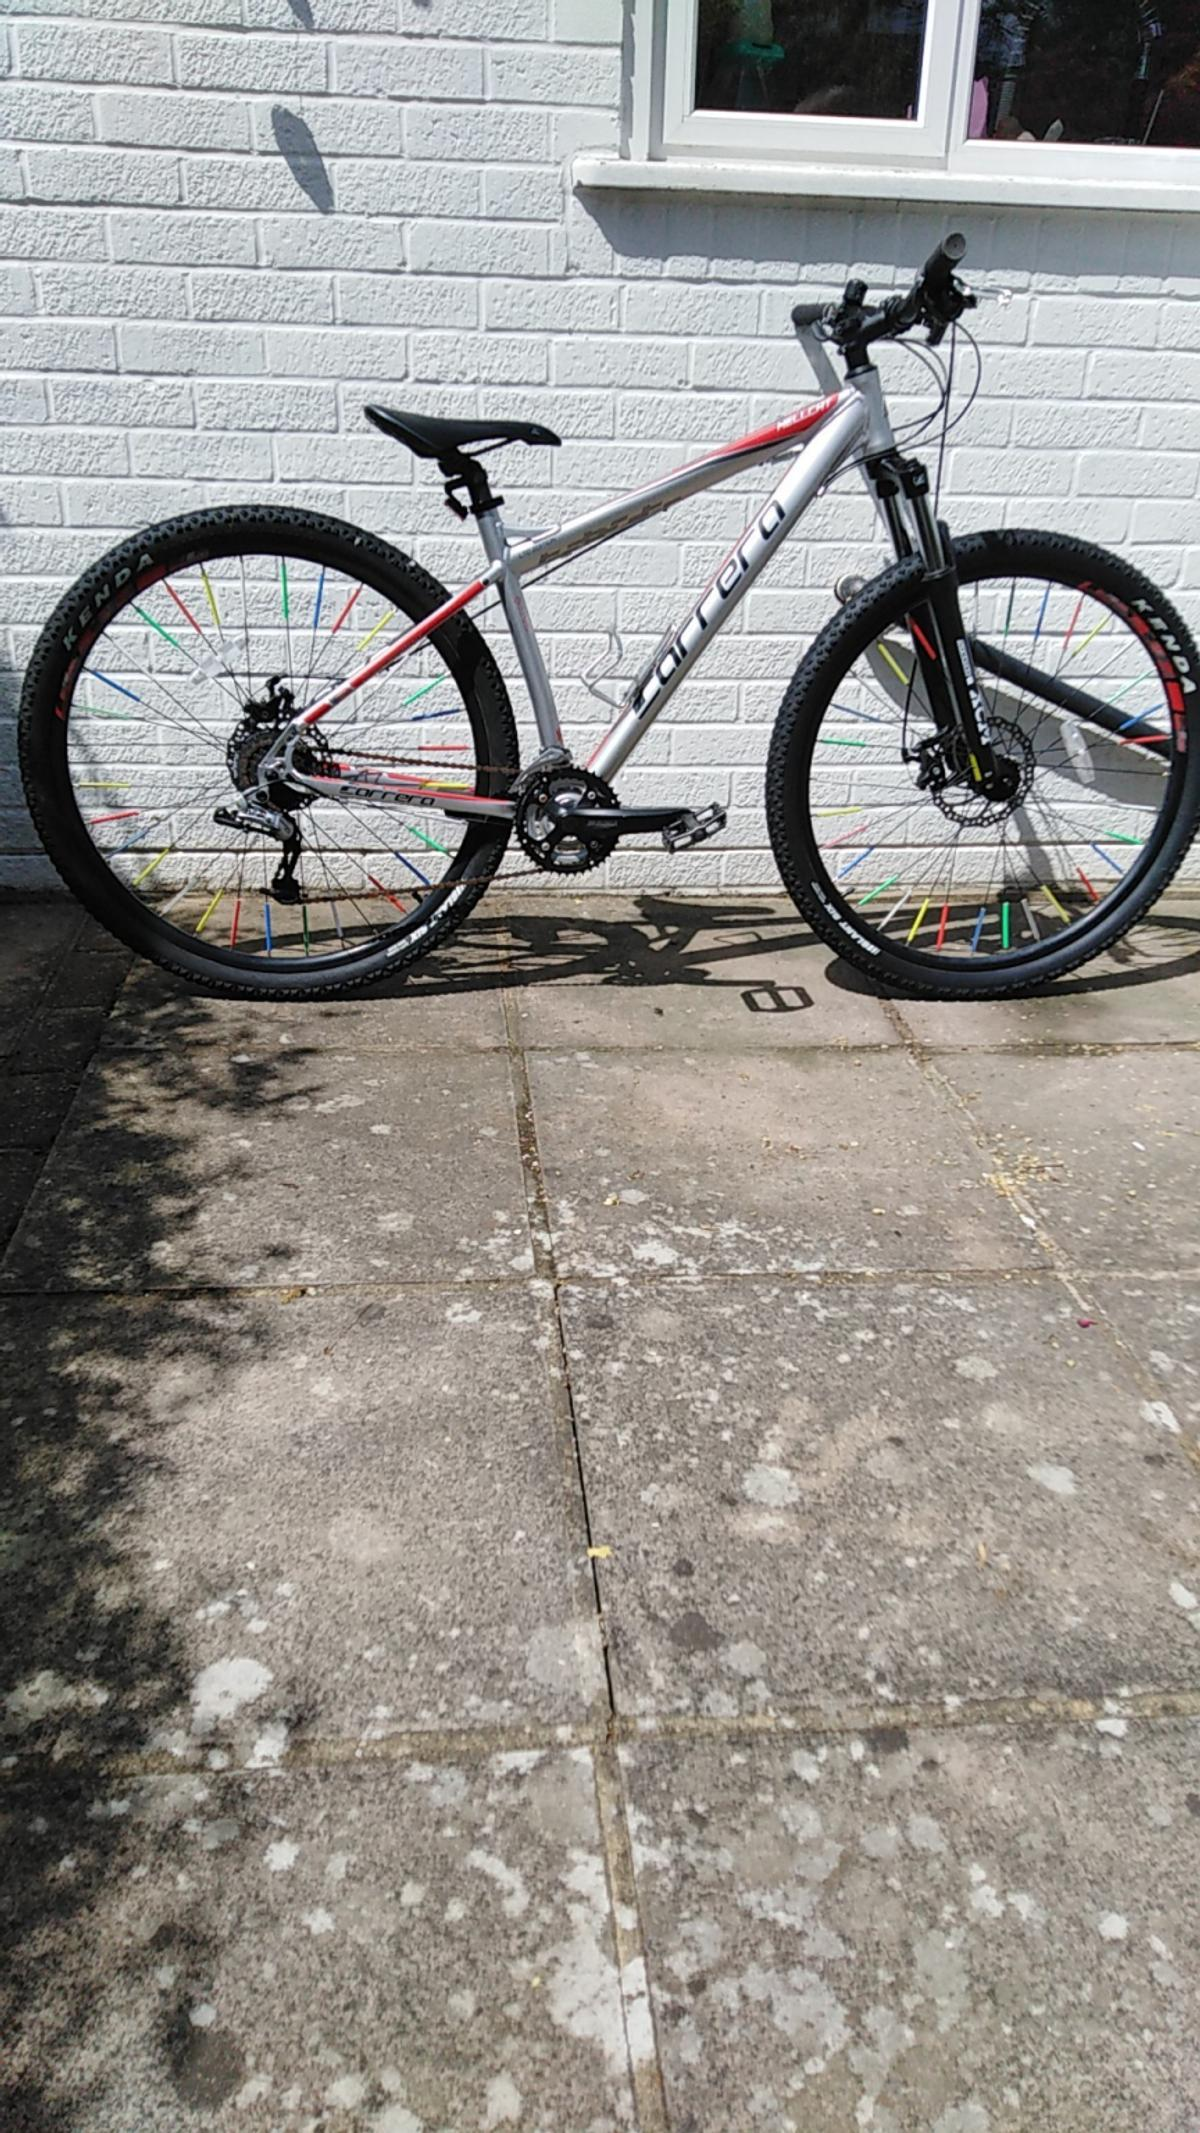 29 inch wheel 18 inch frame Carrera hellcat excellent condition very little use offers welcome cash only